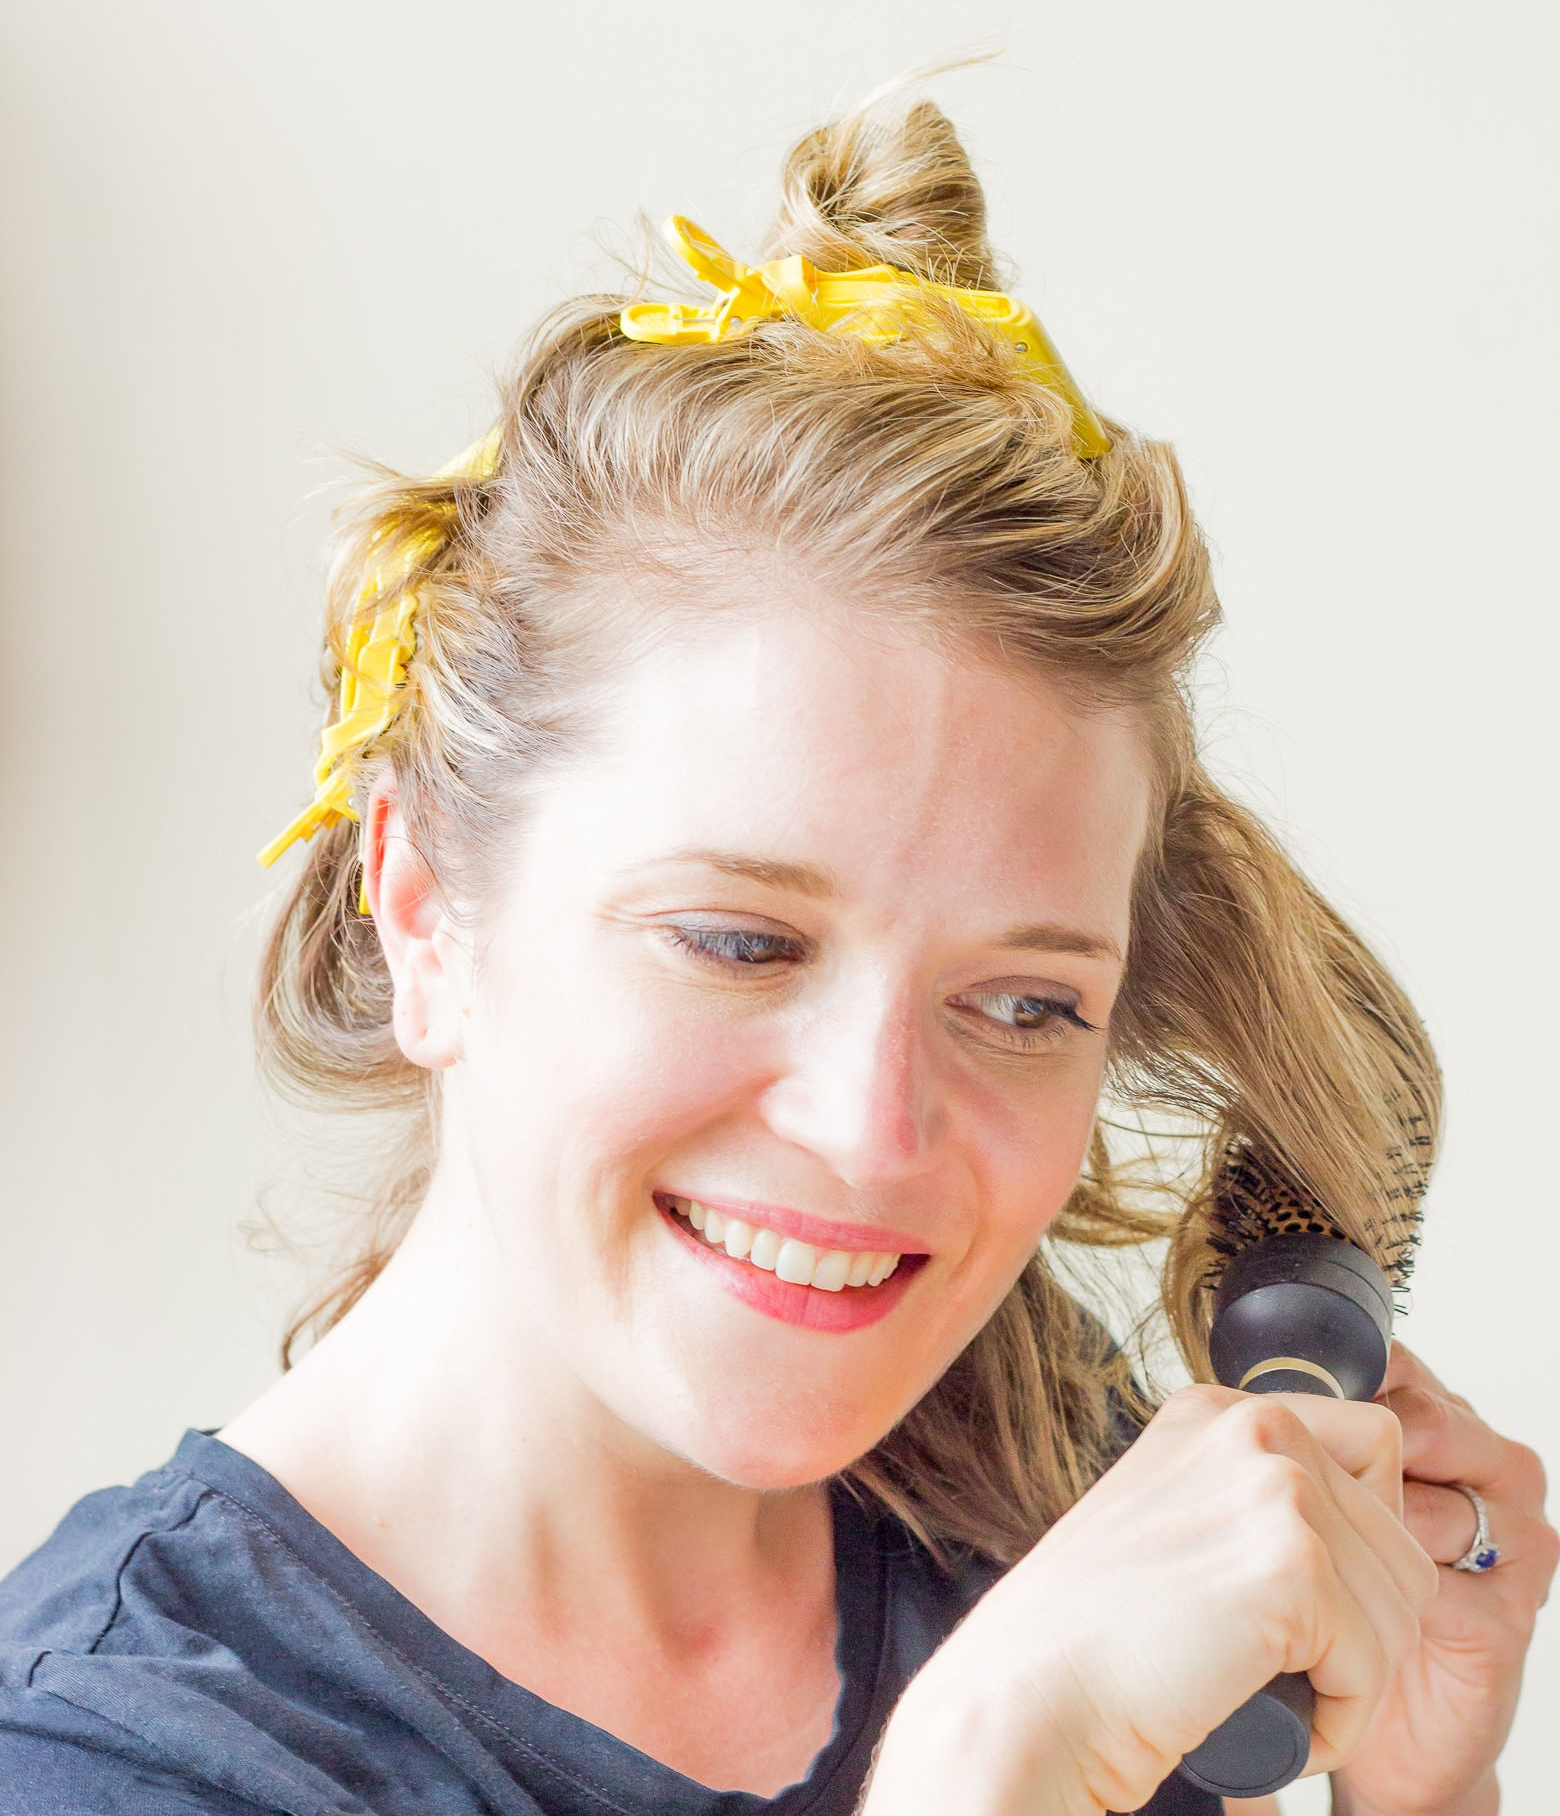 Drybar clips on Belle Meets World blog